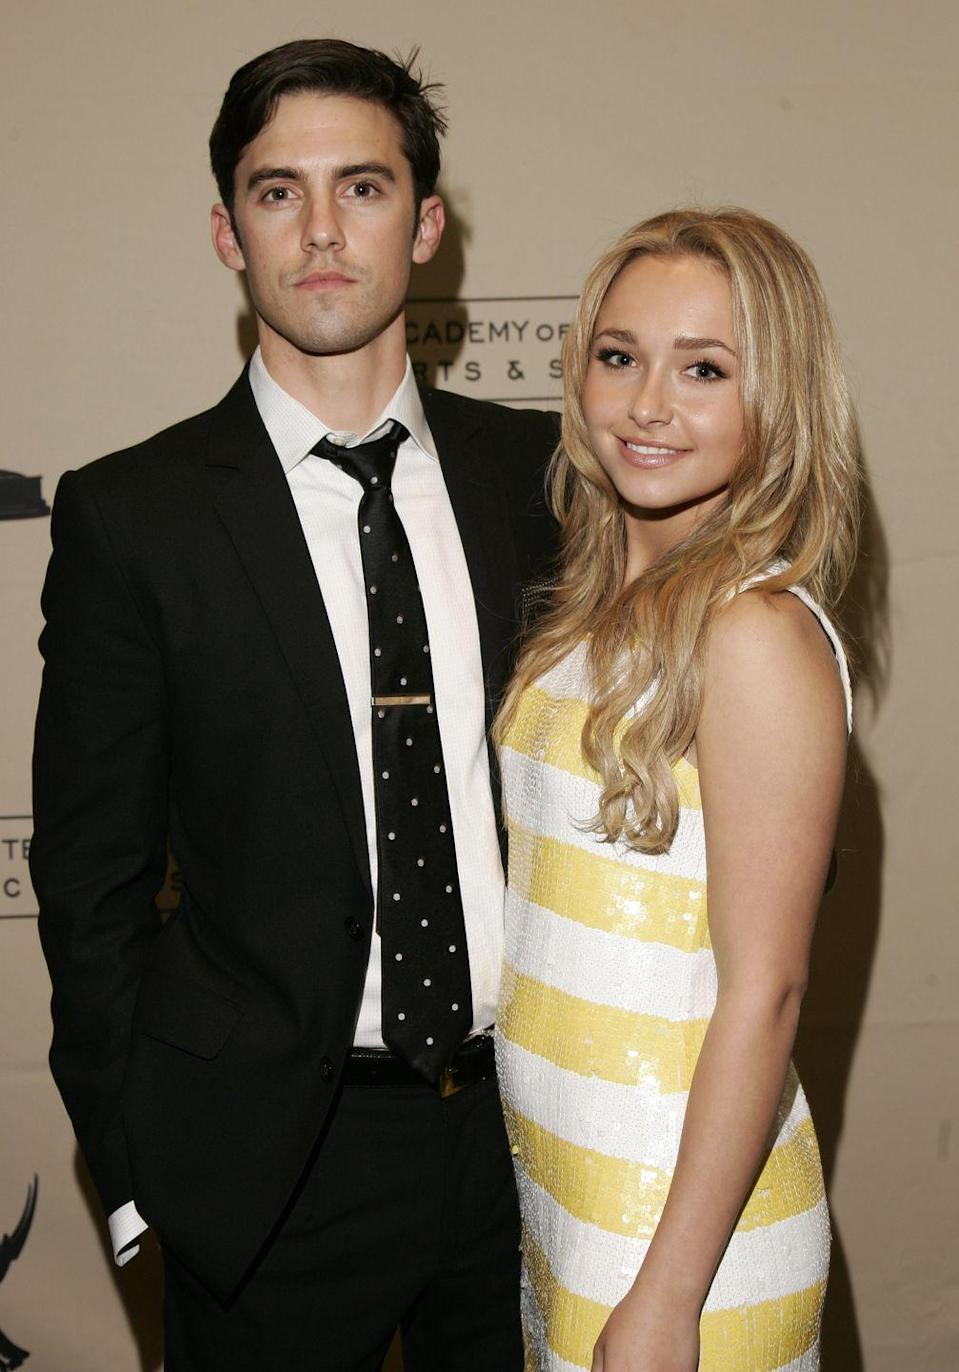 <p>Panettiere starred as the niece of Ventimiglia's character Peter Petrelli in <em>Heroes</em>, but that didn't keep the co-stars from pursuing a romance off-screen. They dated when the actress was just 18 and the age gap—Ventimiglia was 12 years her senior at the time—ultimately caused them to call it quits in 2009. The show aired its final episode a year later. </p>